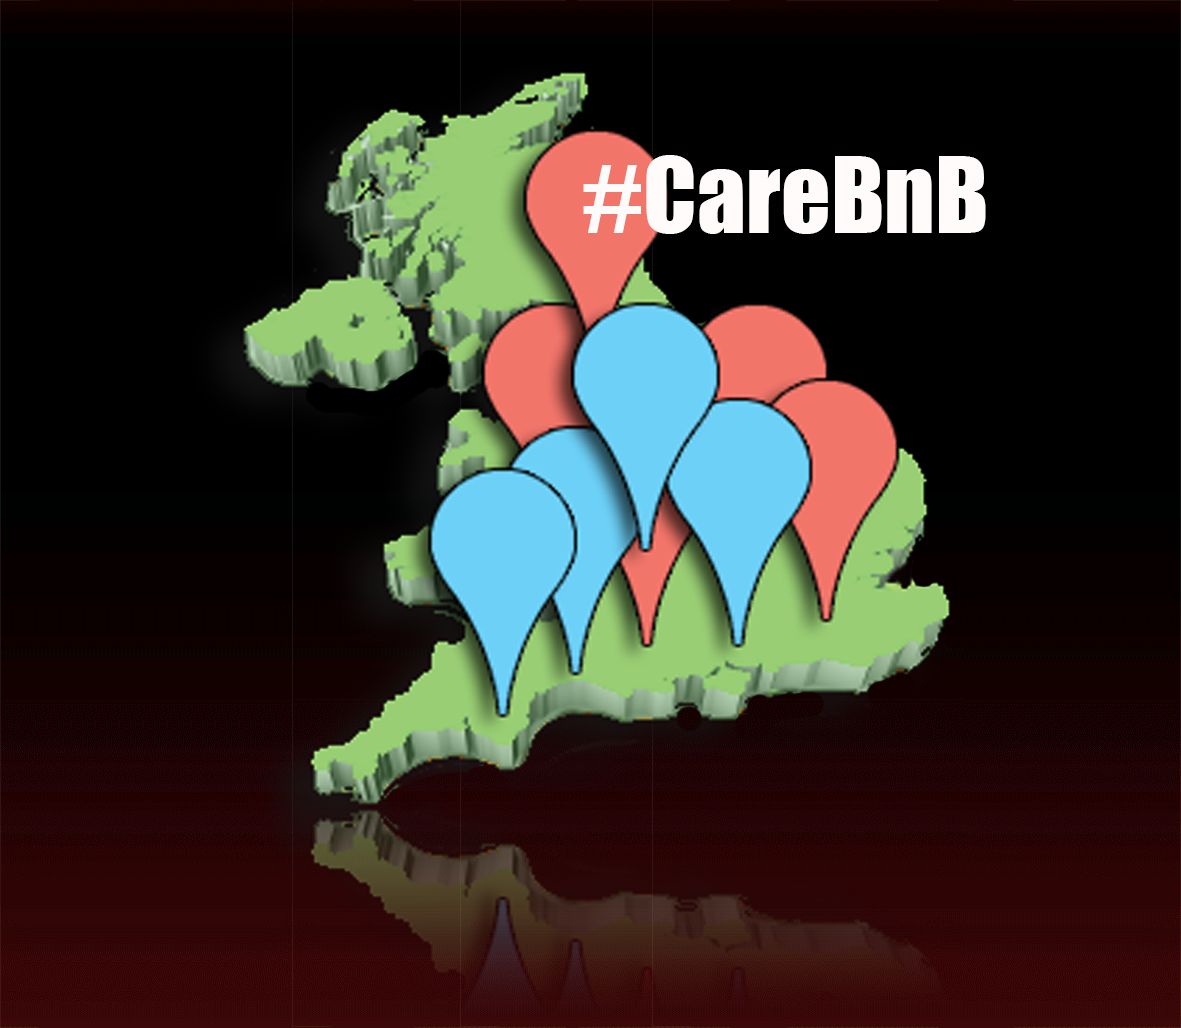 #CareBnB Map of the UK